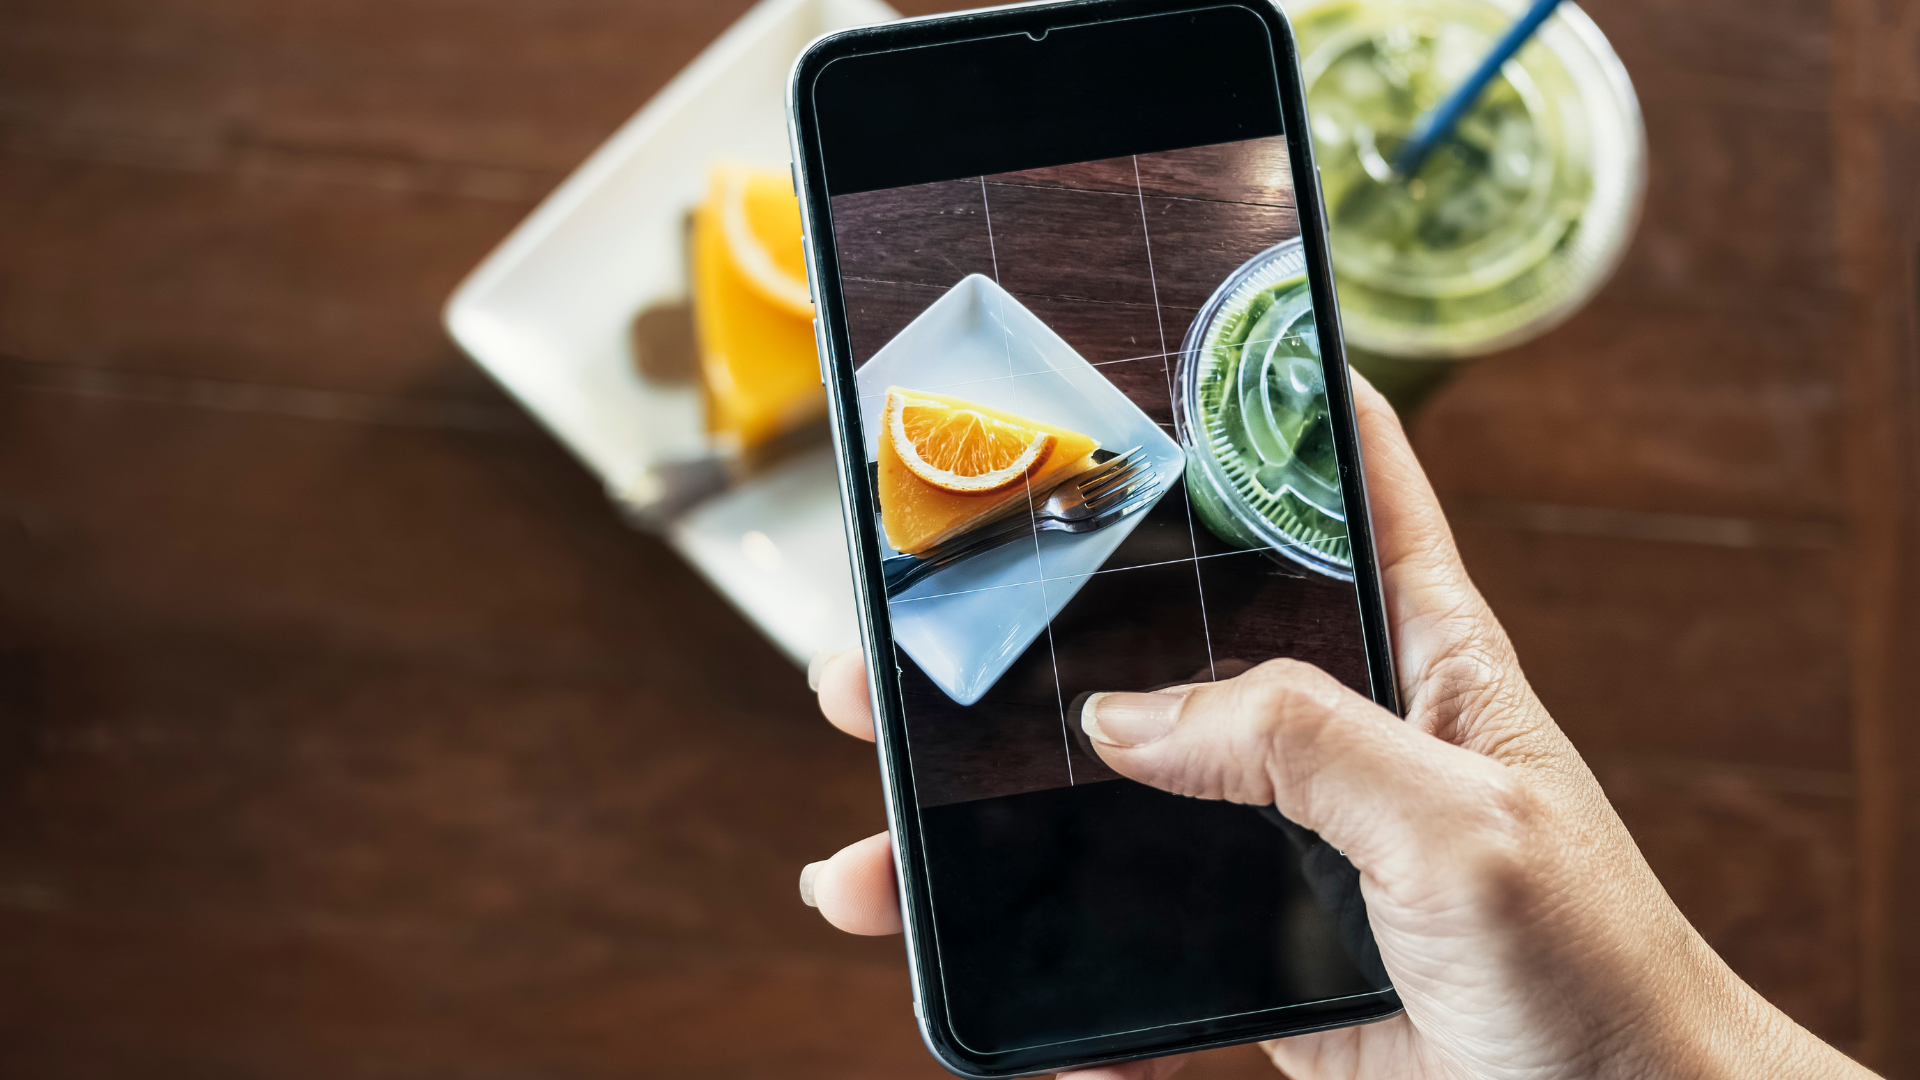 How to use Instagram for cafe marketing